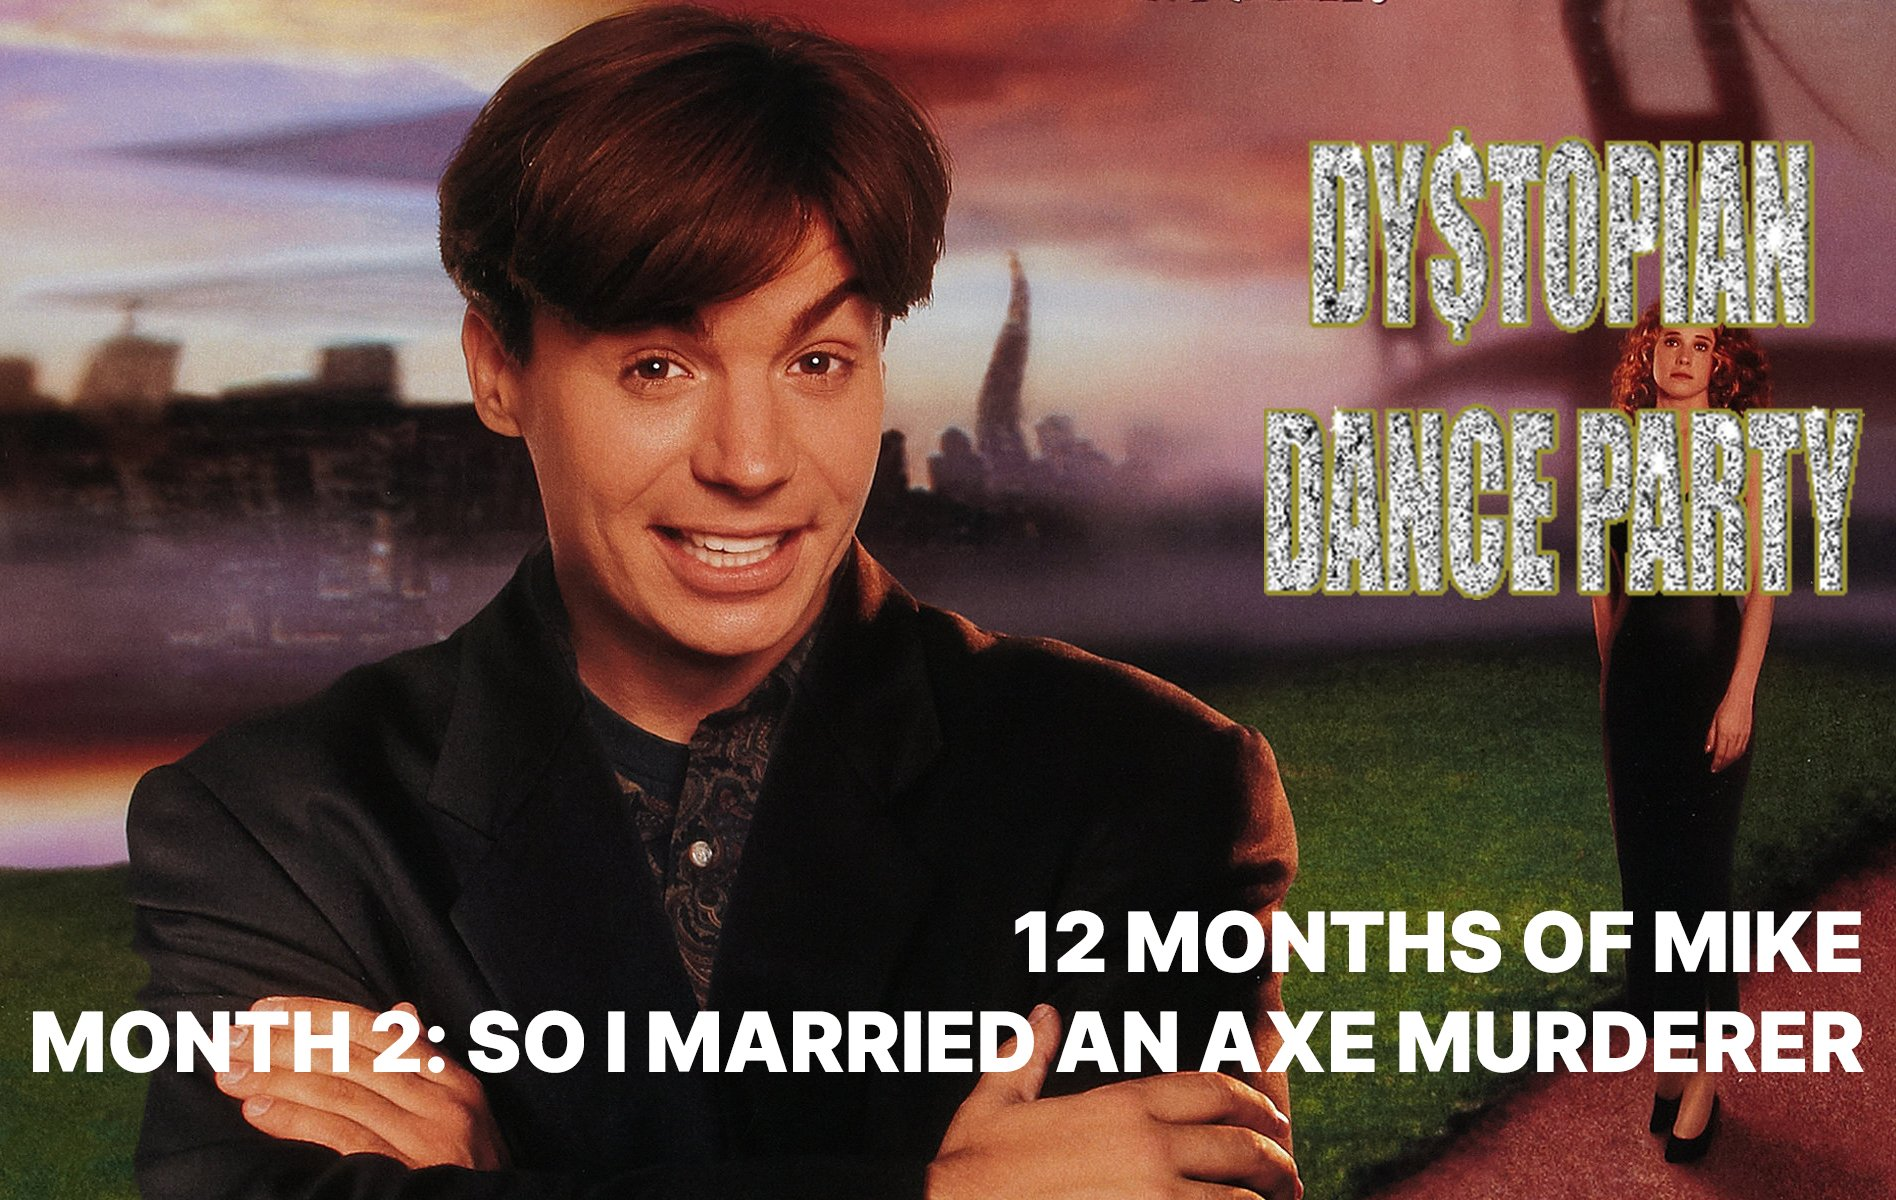 12 Months of Mike Month 2: So I Married an Axe Murderer